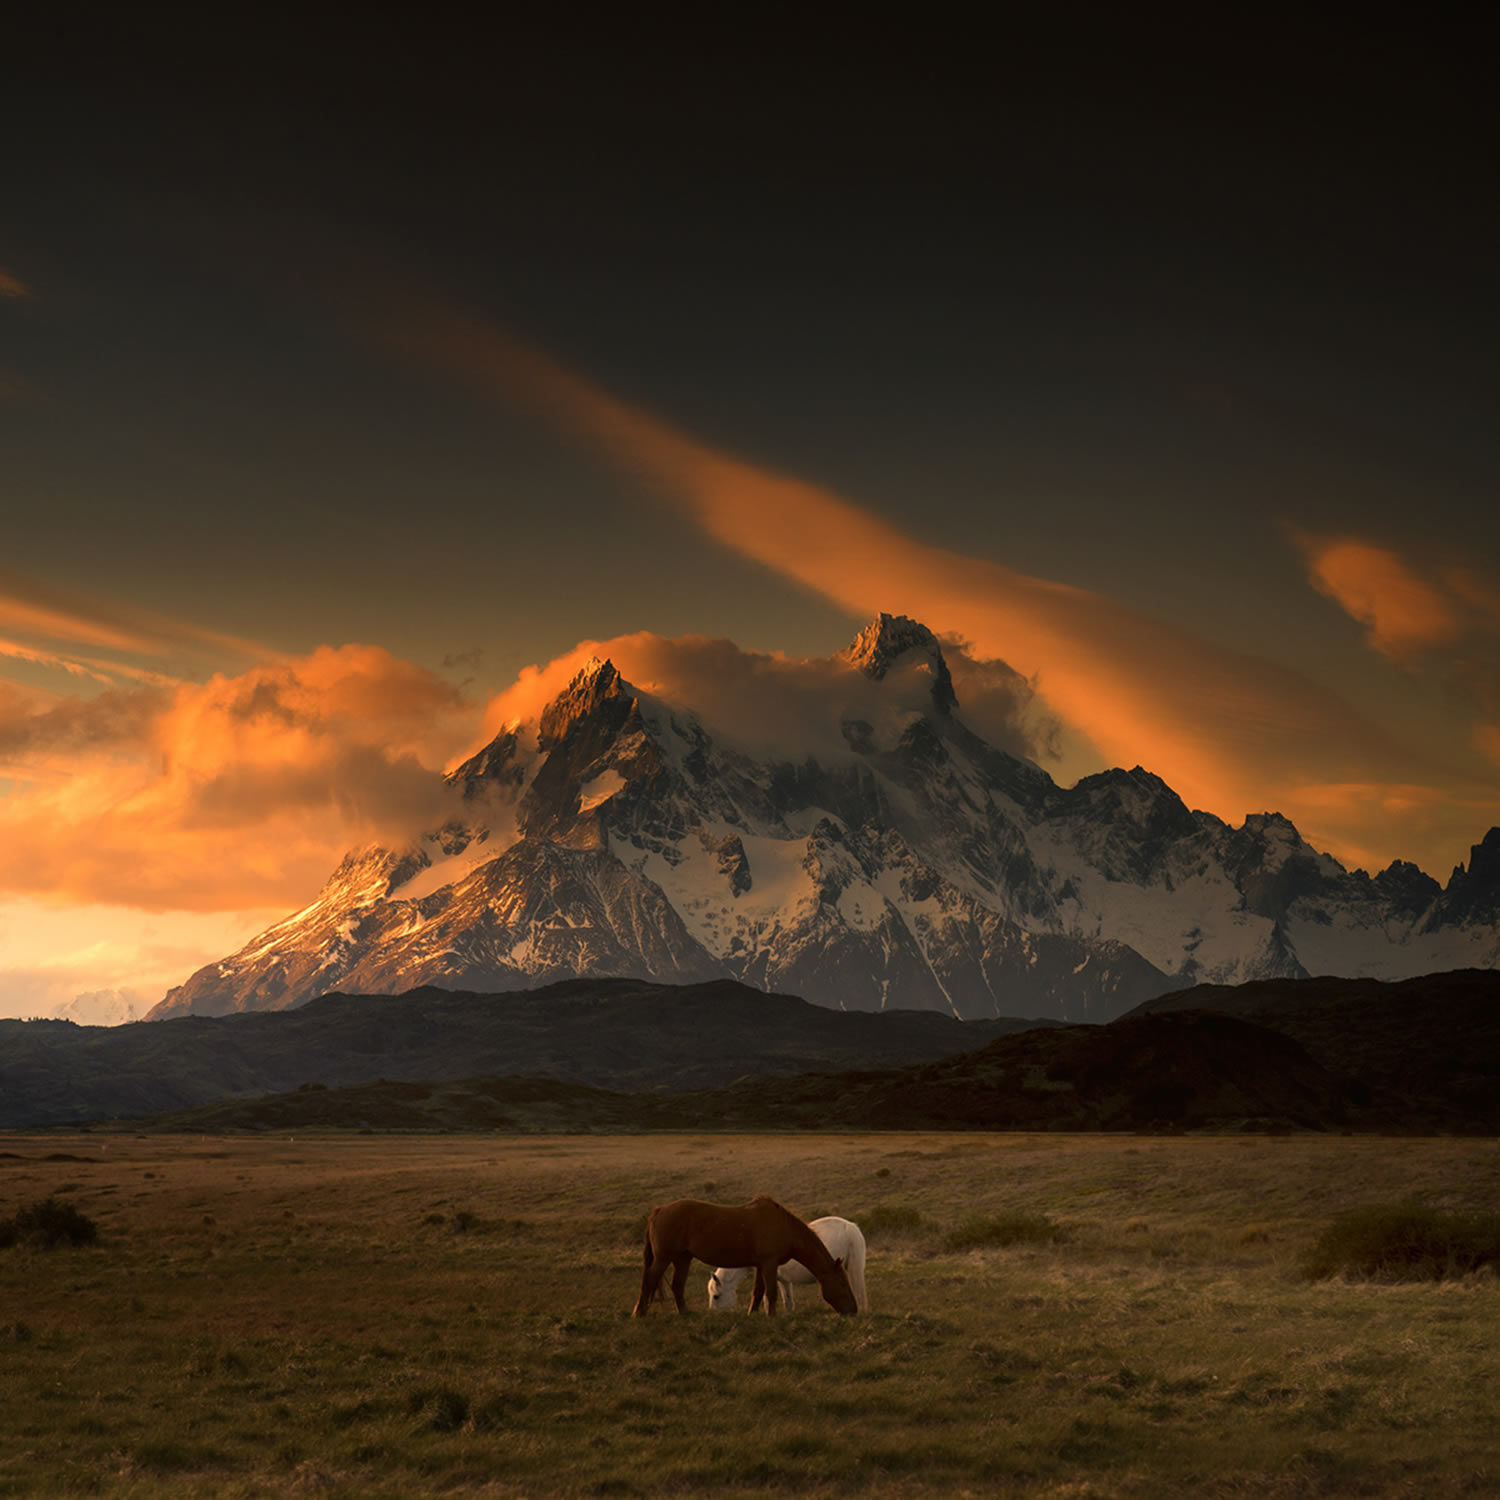 horses and mountain, patagonia